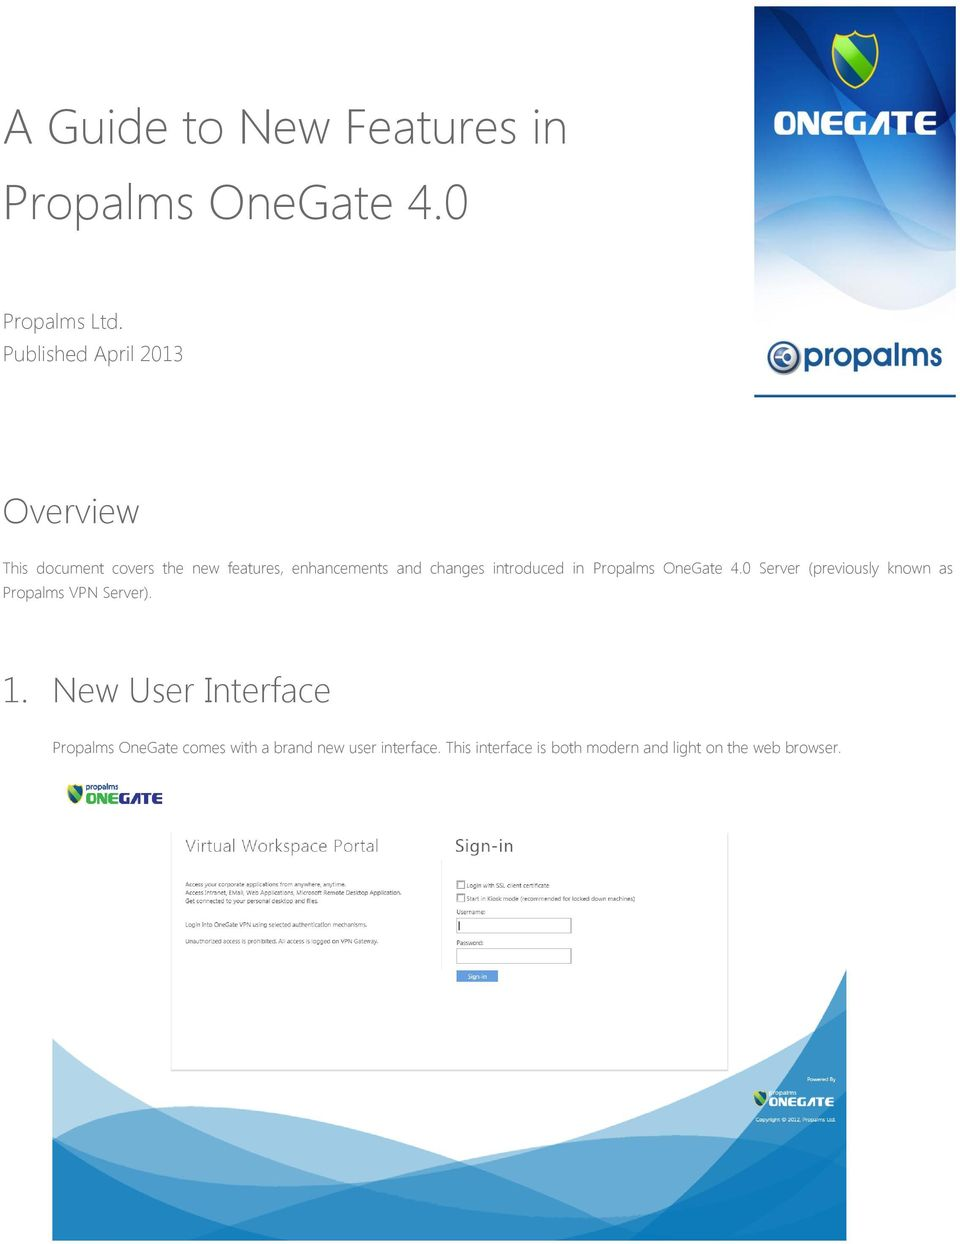 introduced in Propalms OneGate 4.0 Server (previously known as Propalms VPN Server). 1.